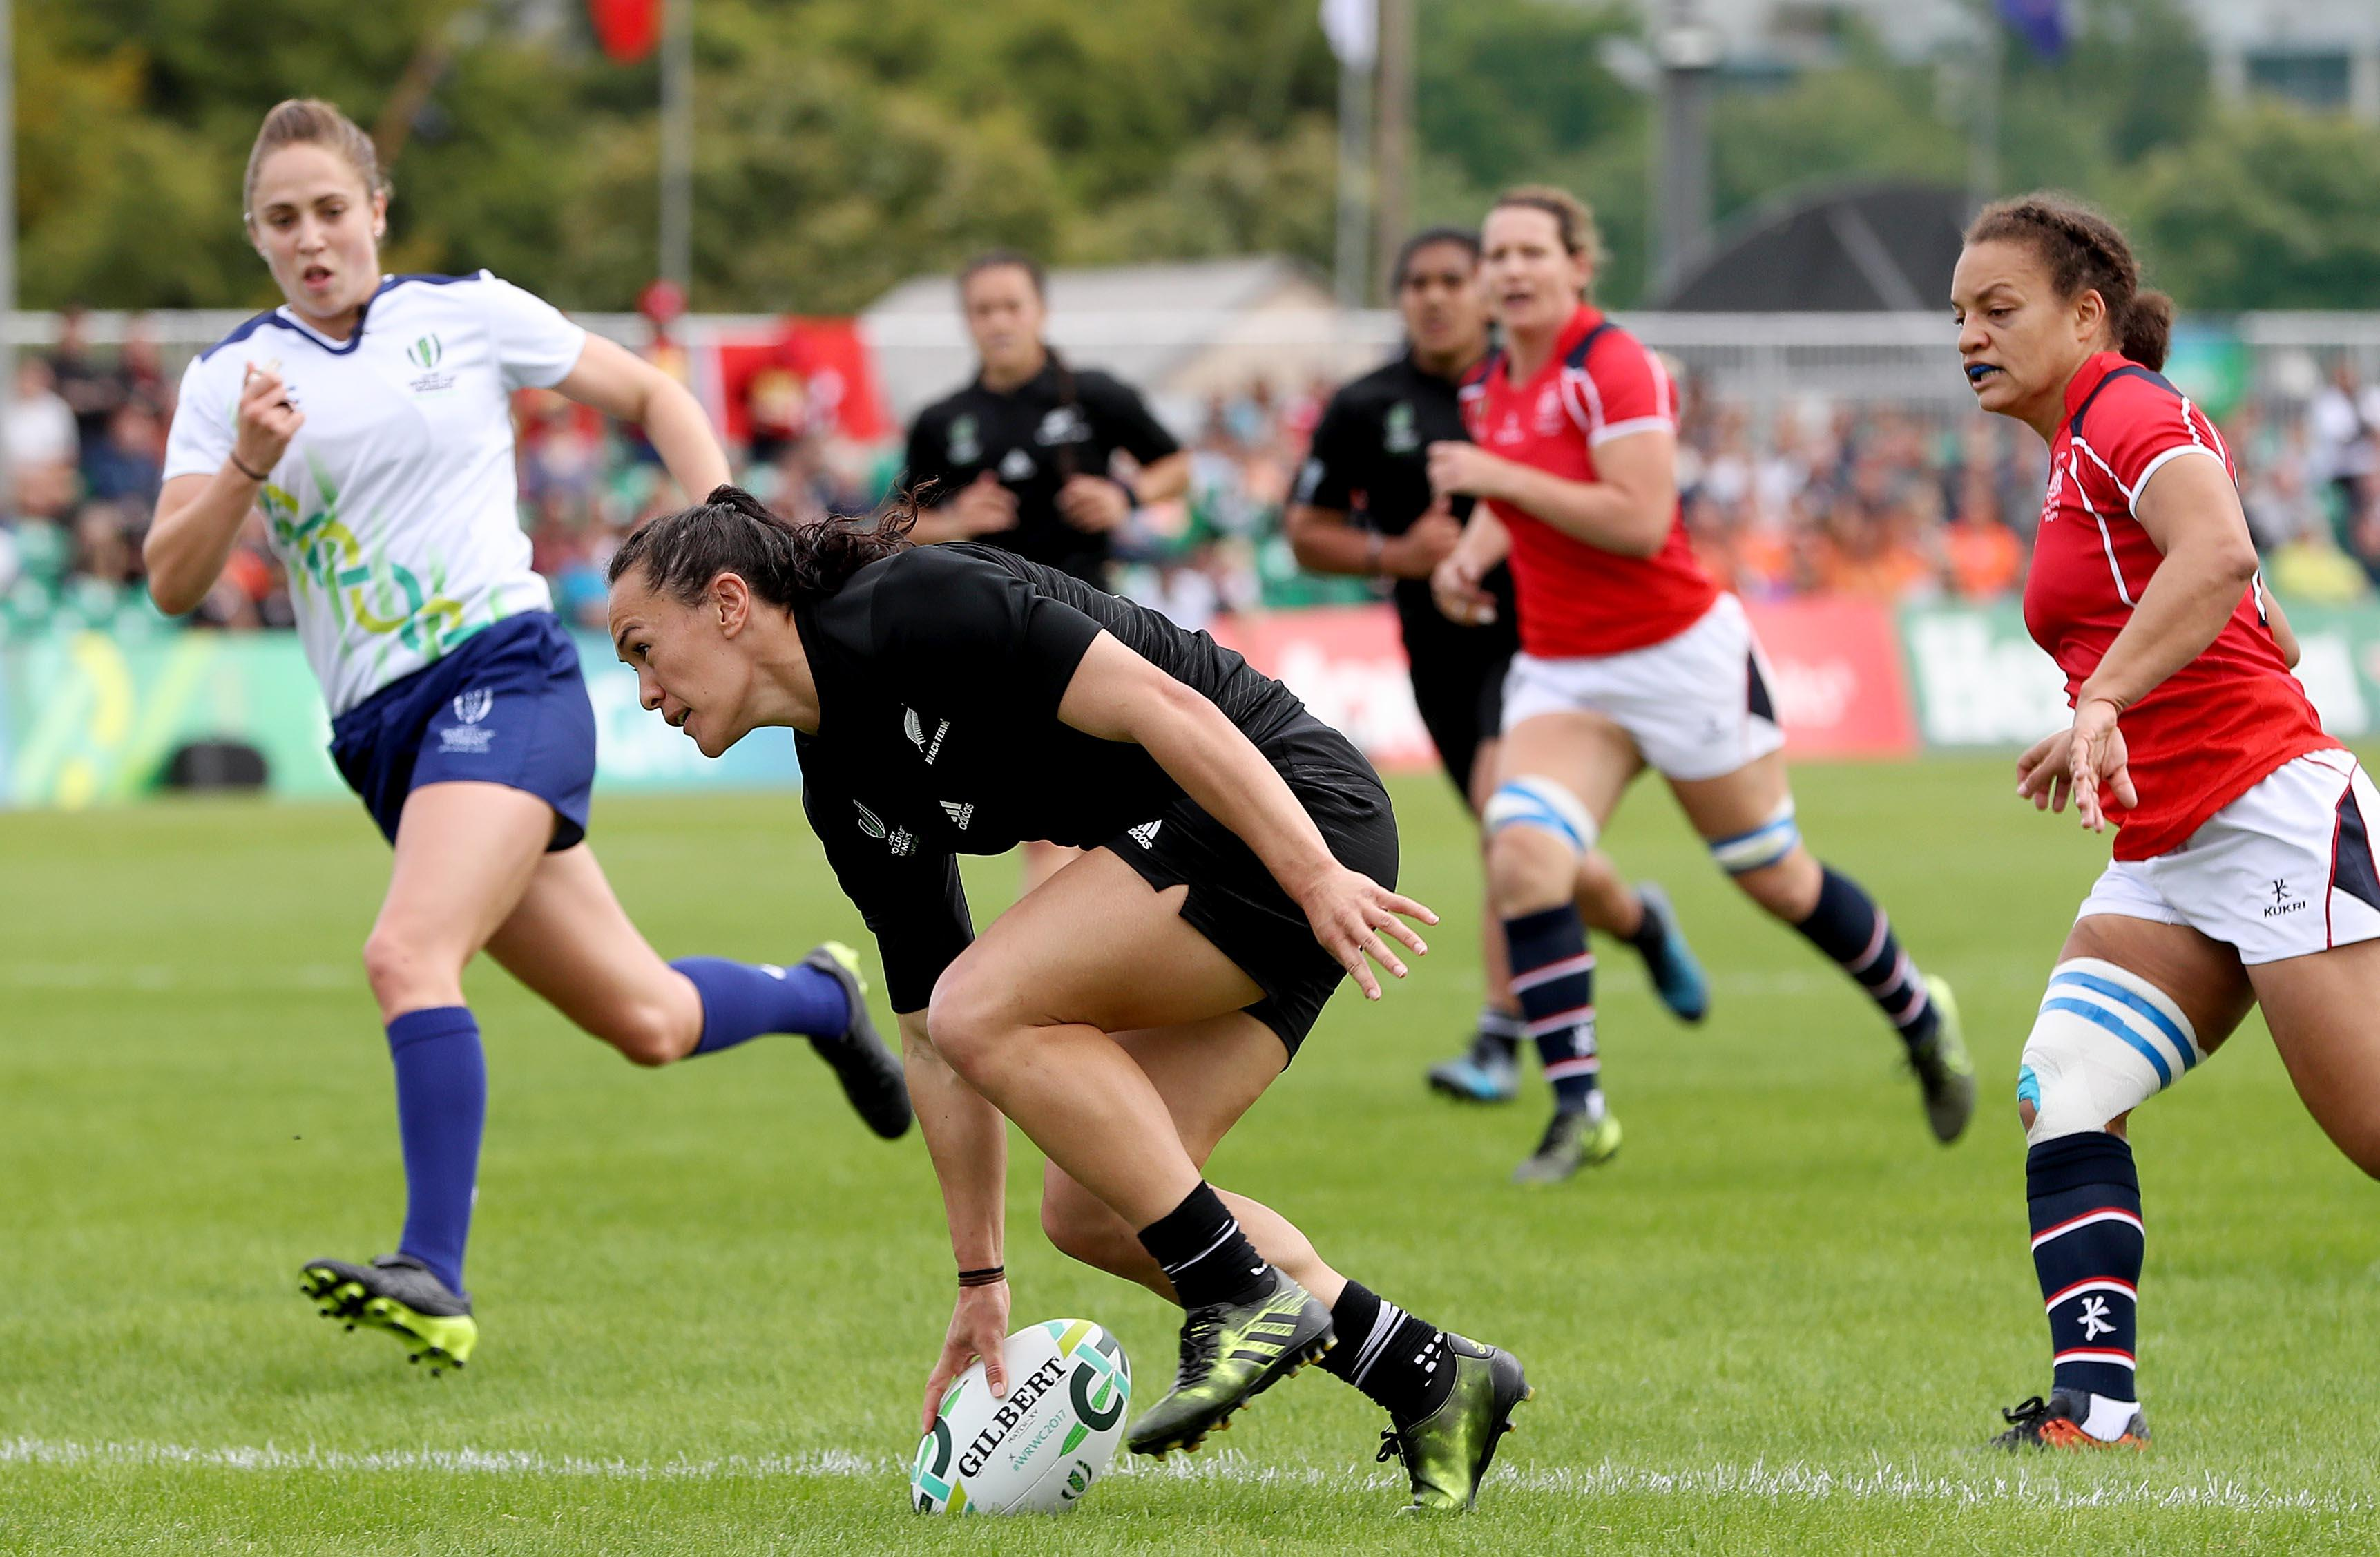 rugby world cup - photo #16